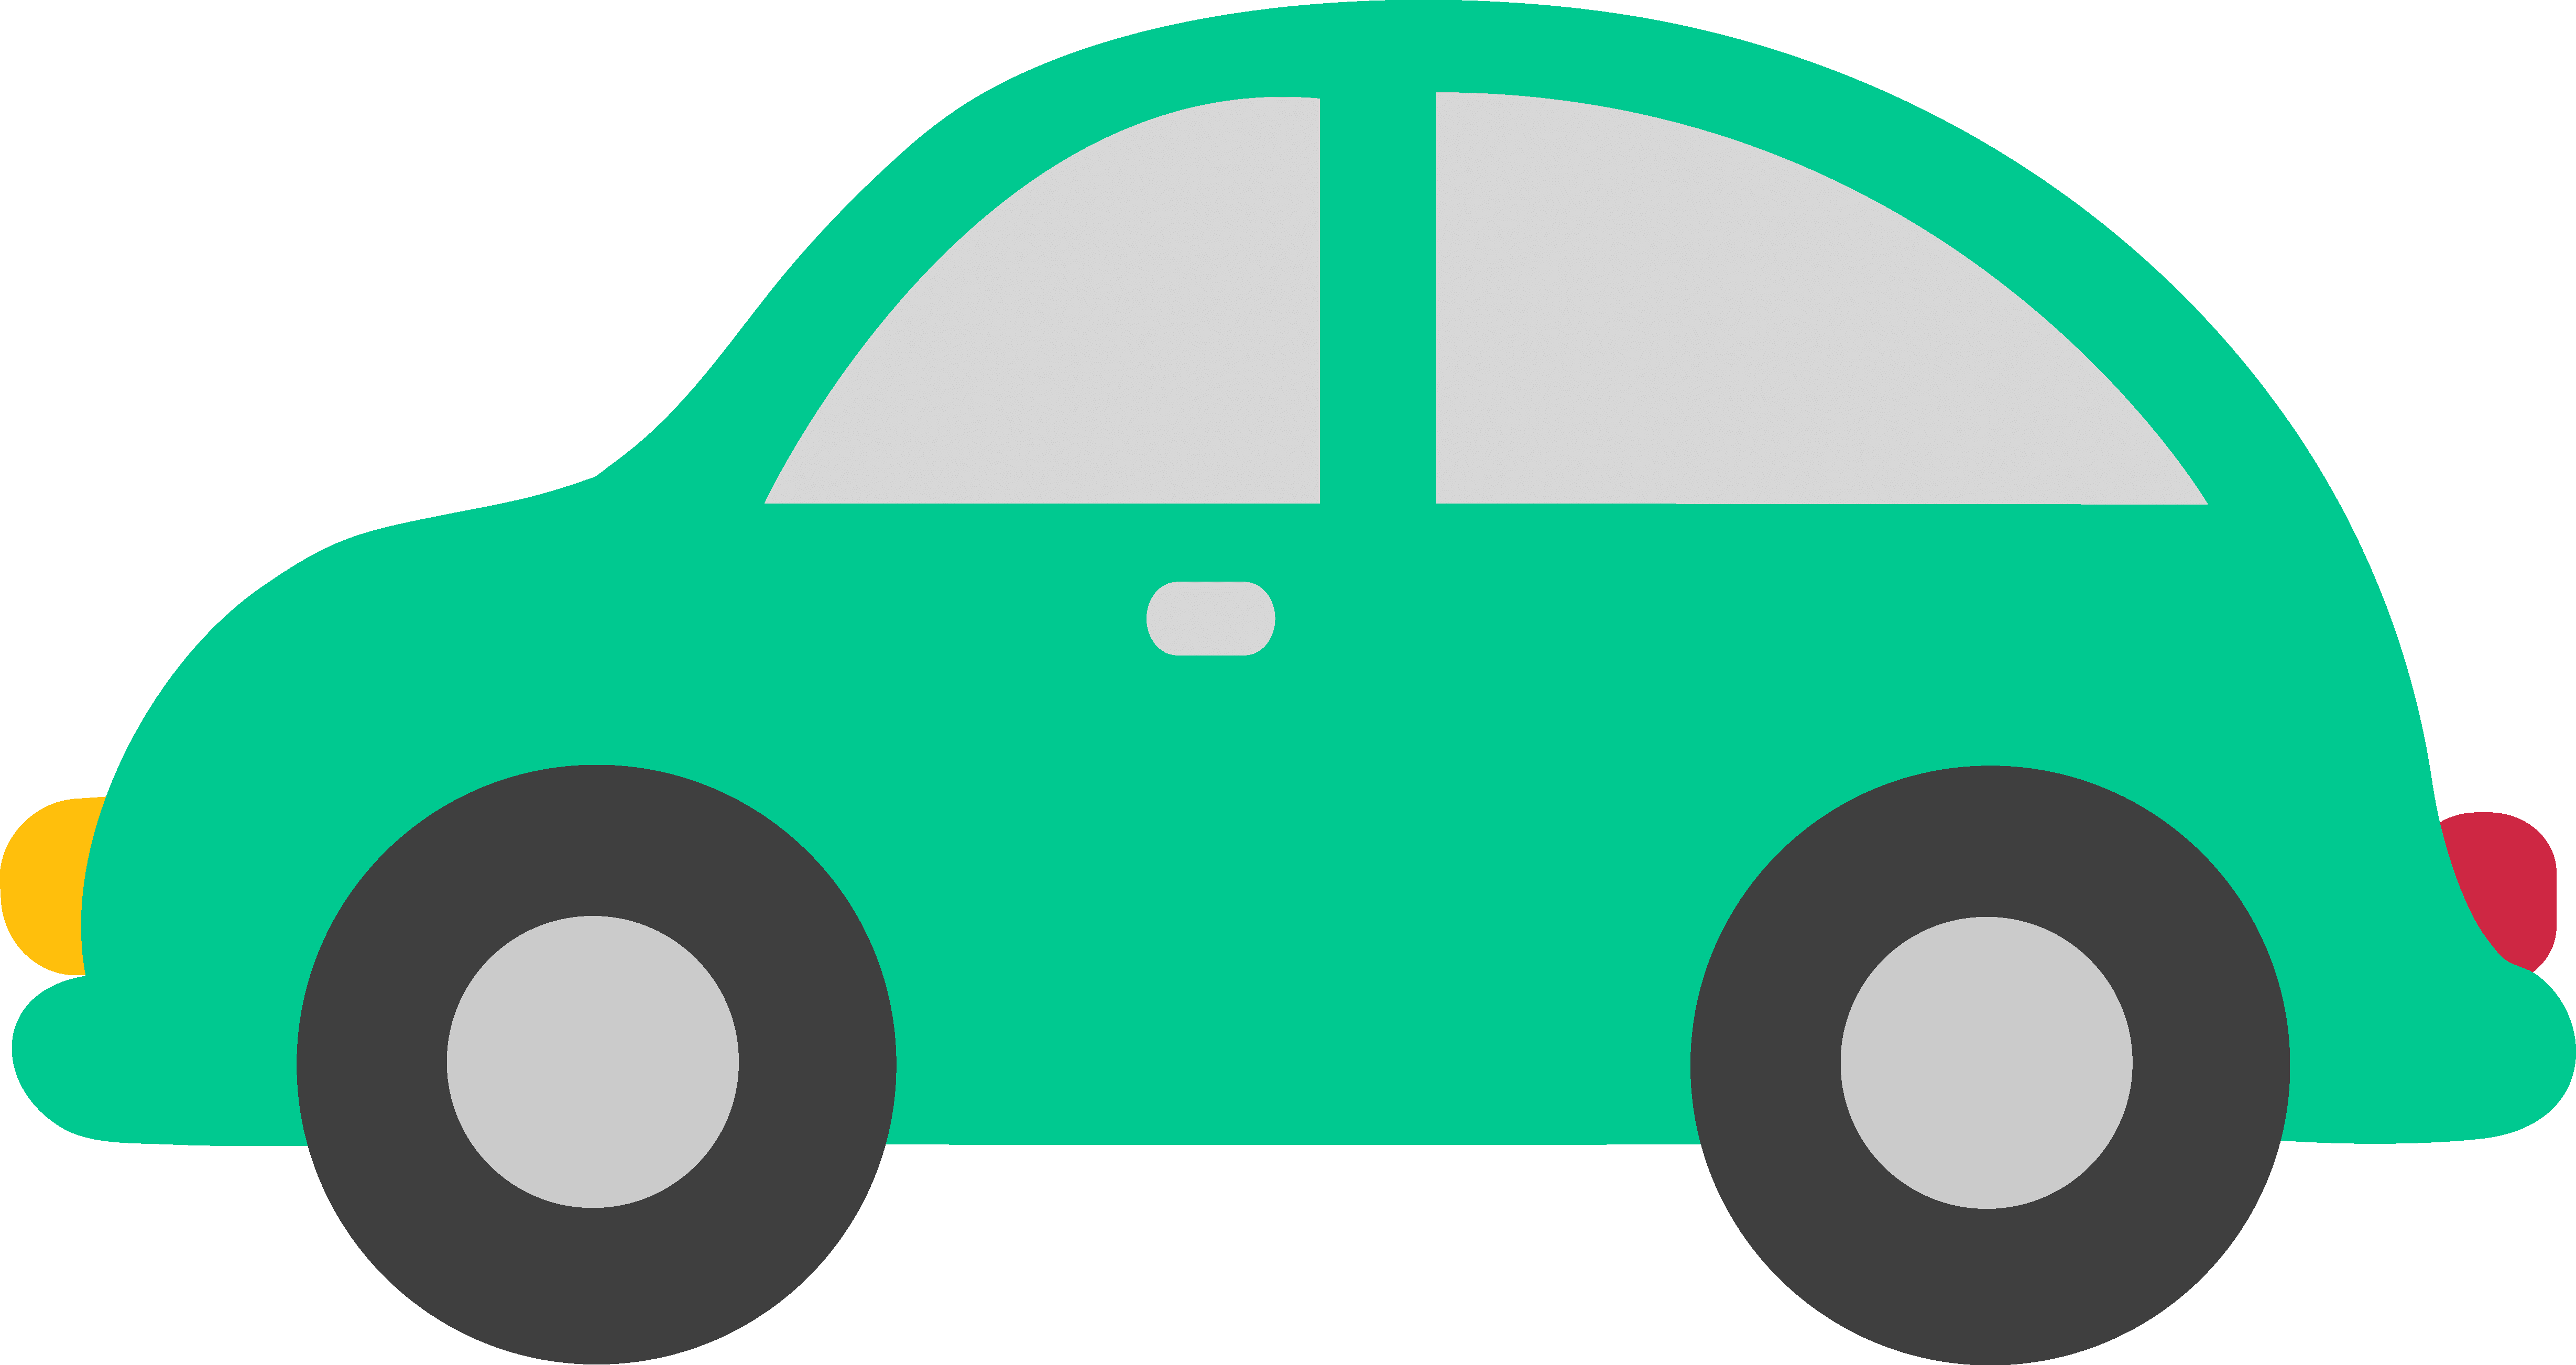 Vehicle cliparts zone. Driver clipart cute